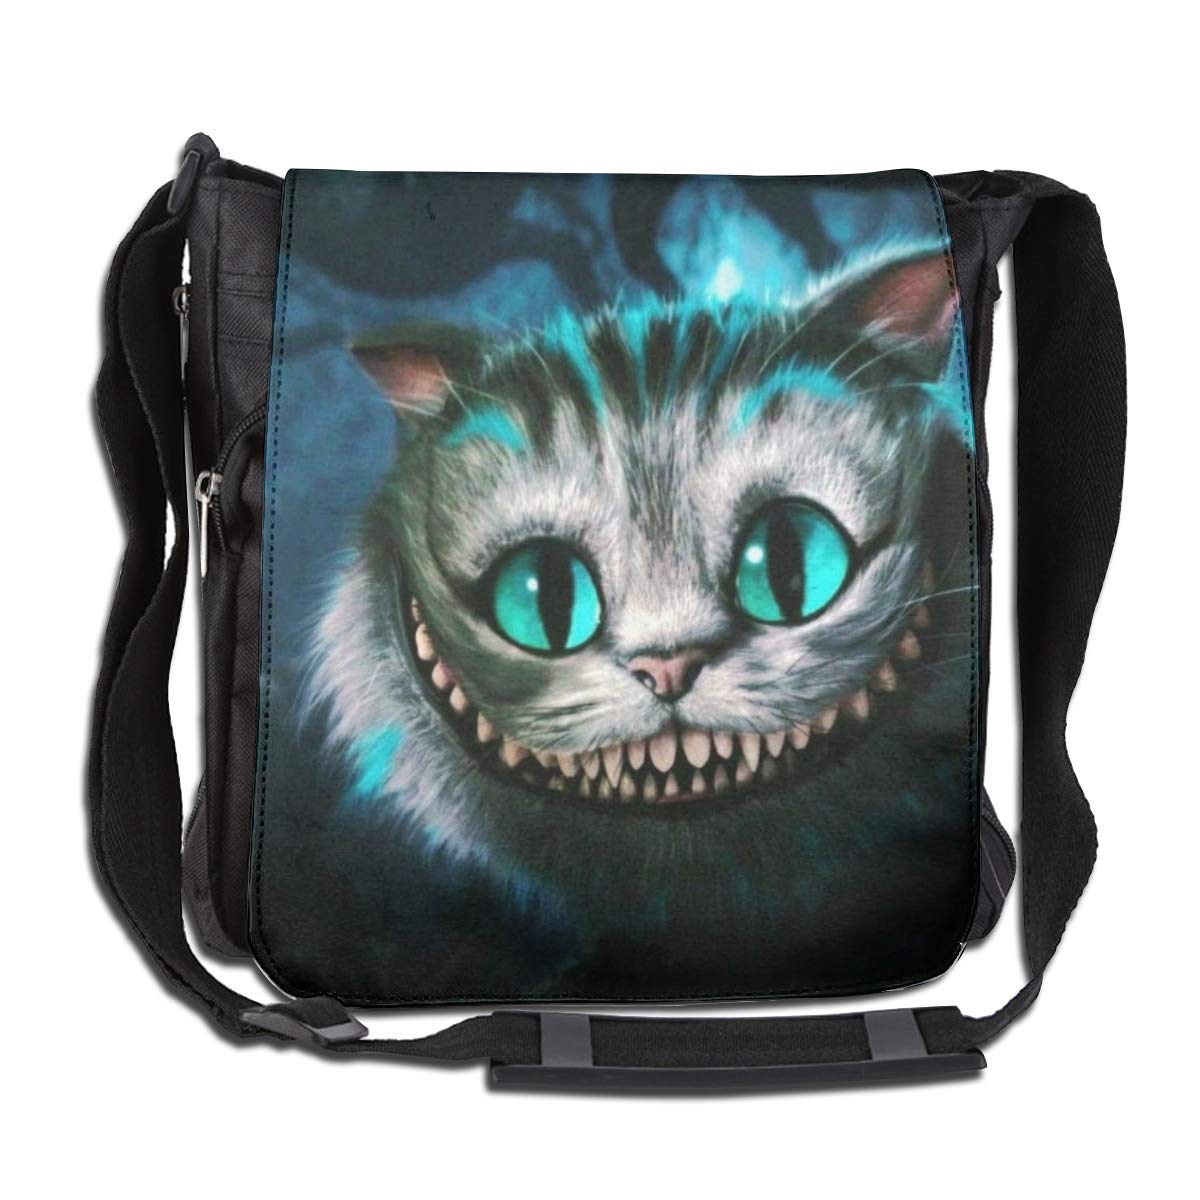 Unisex The Che-sh-ire Cat Printed Vertical Crossbody Single Shoulder Bag With Mini Adjustable Strap Travelling Bag